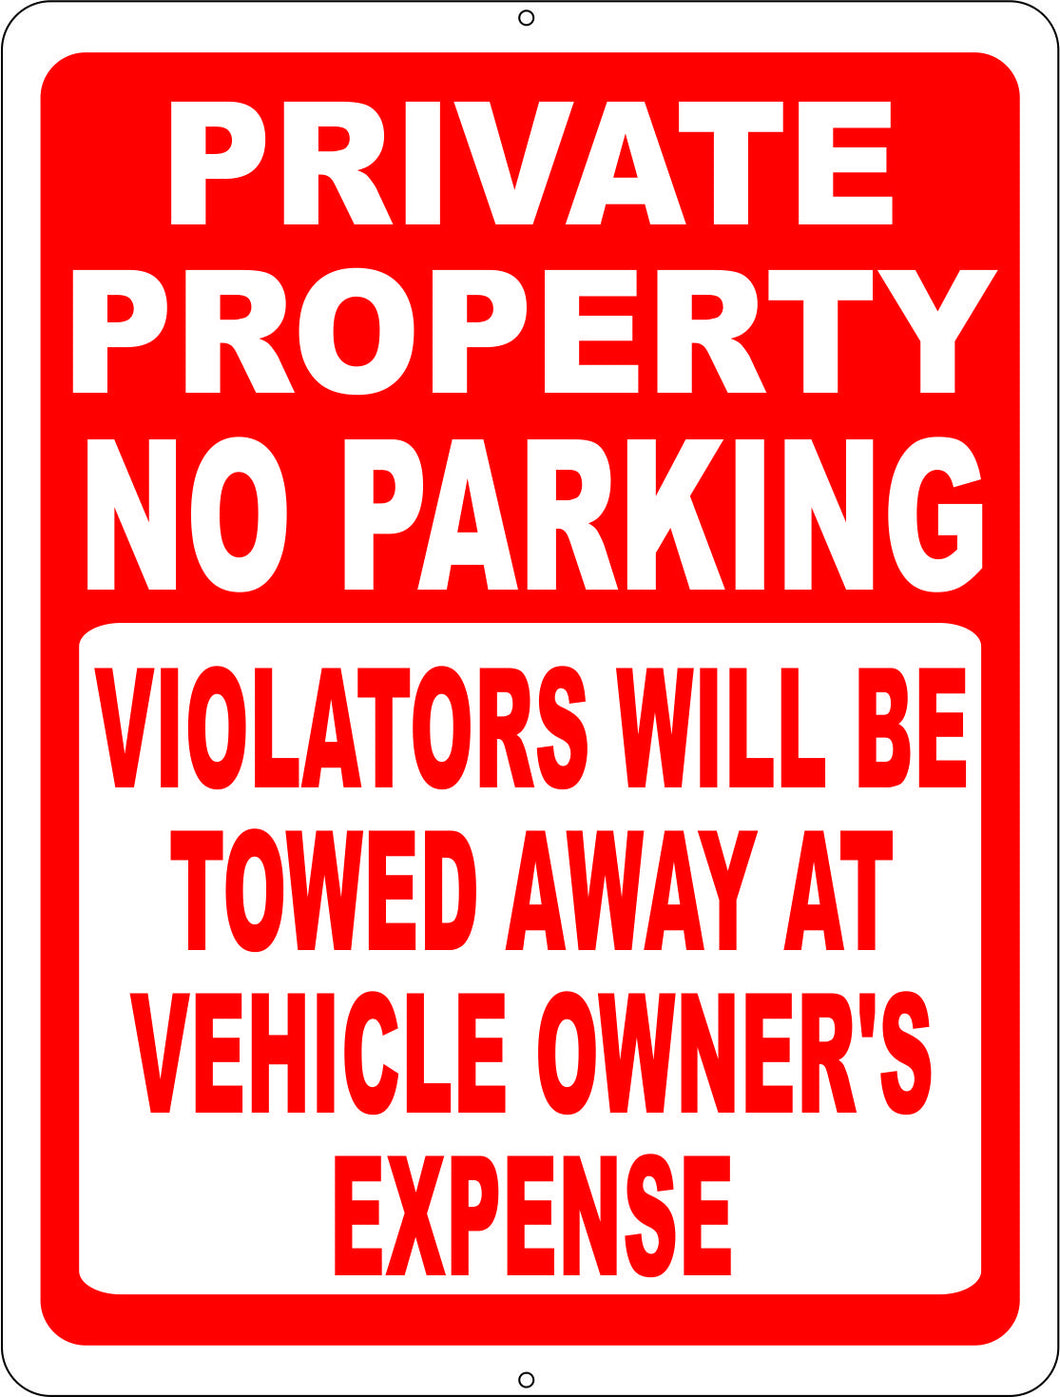 Private Property No Parking Violators Towed at Owner's Expense Sign - Signs & Decals by SalaGraphics